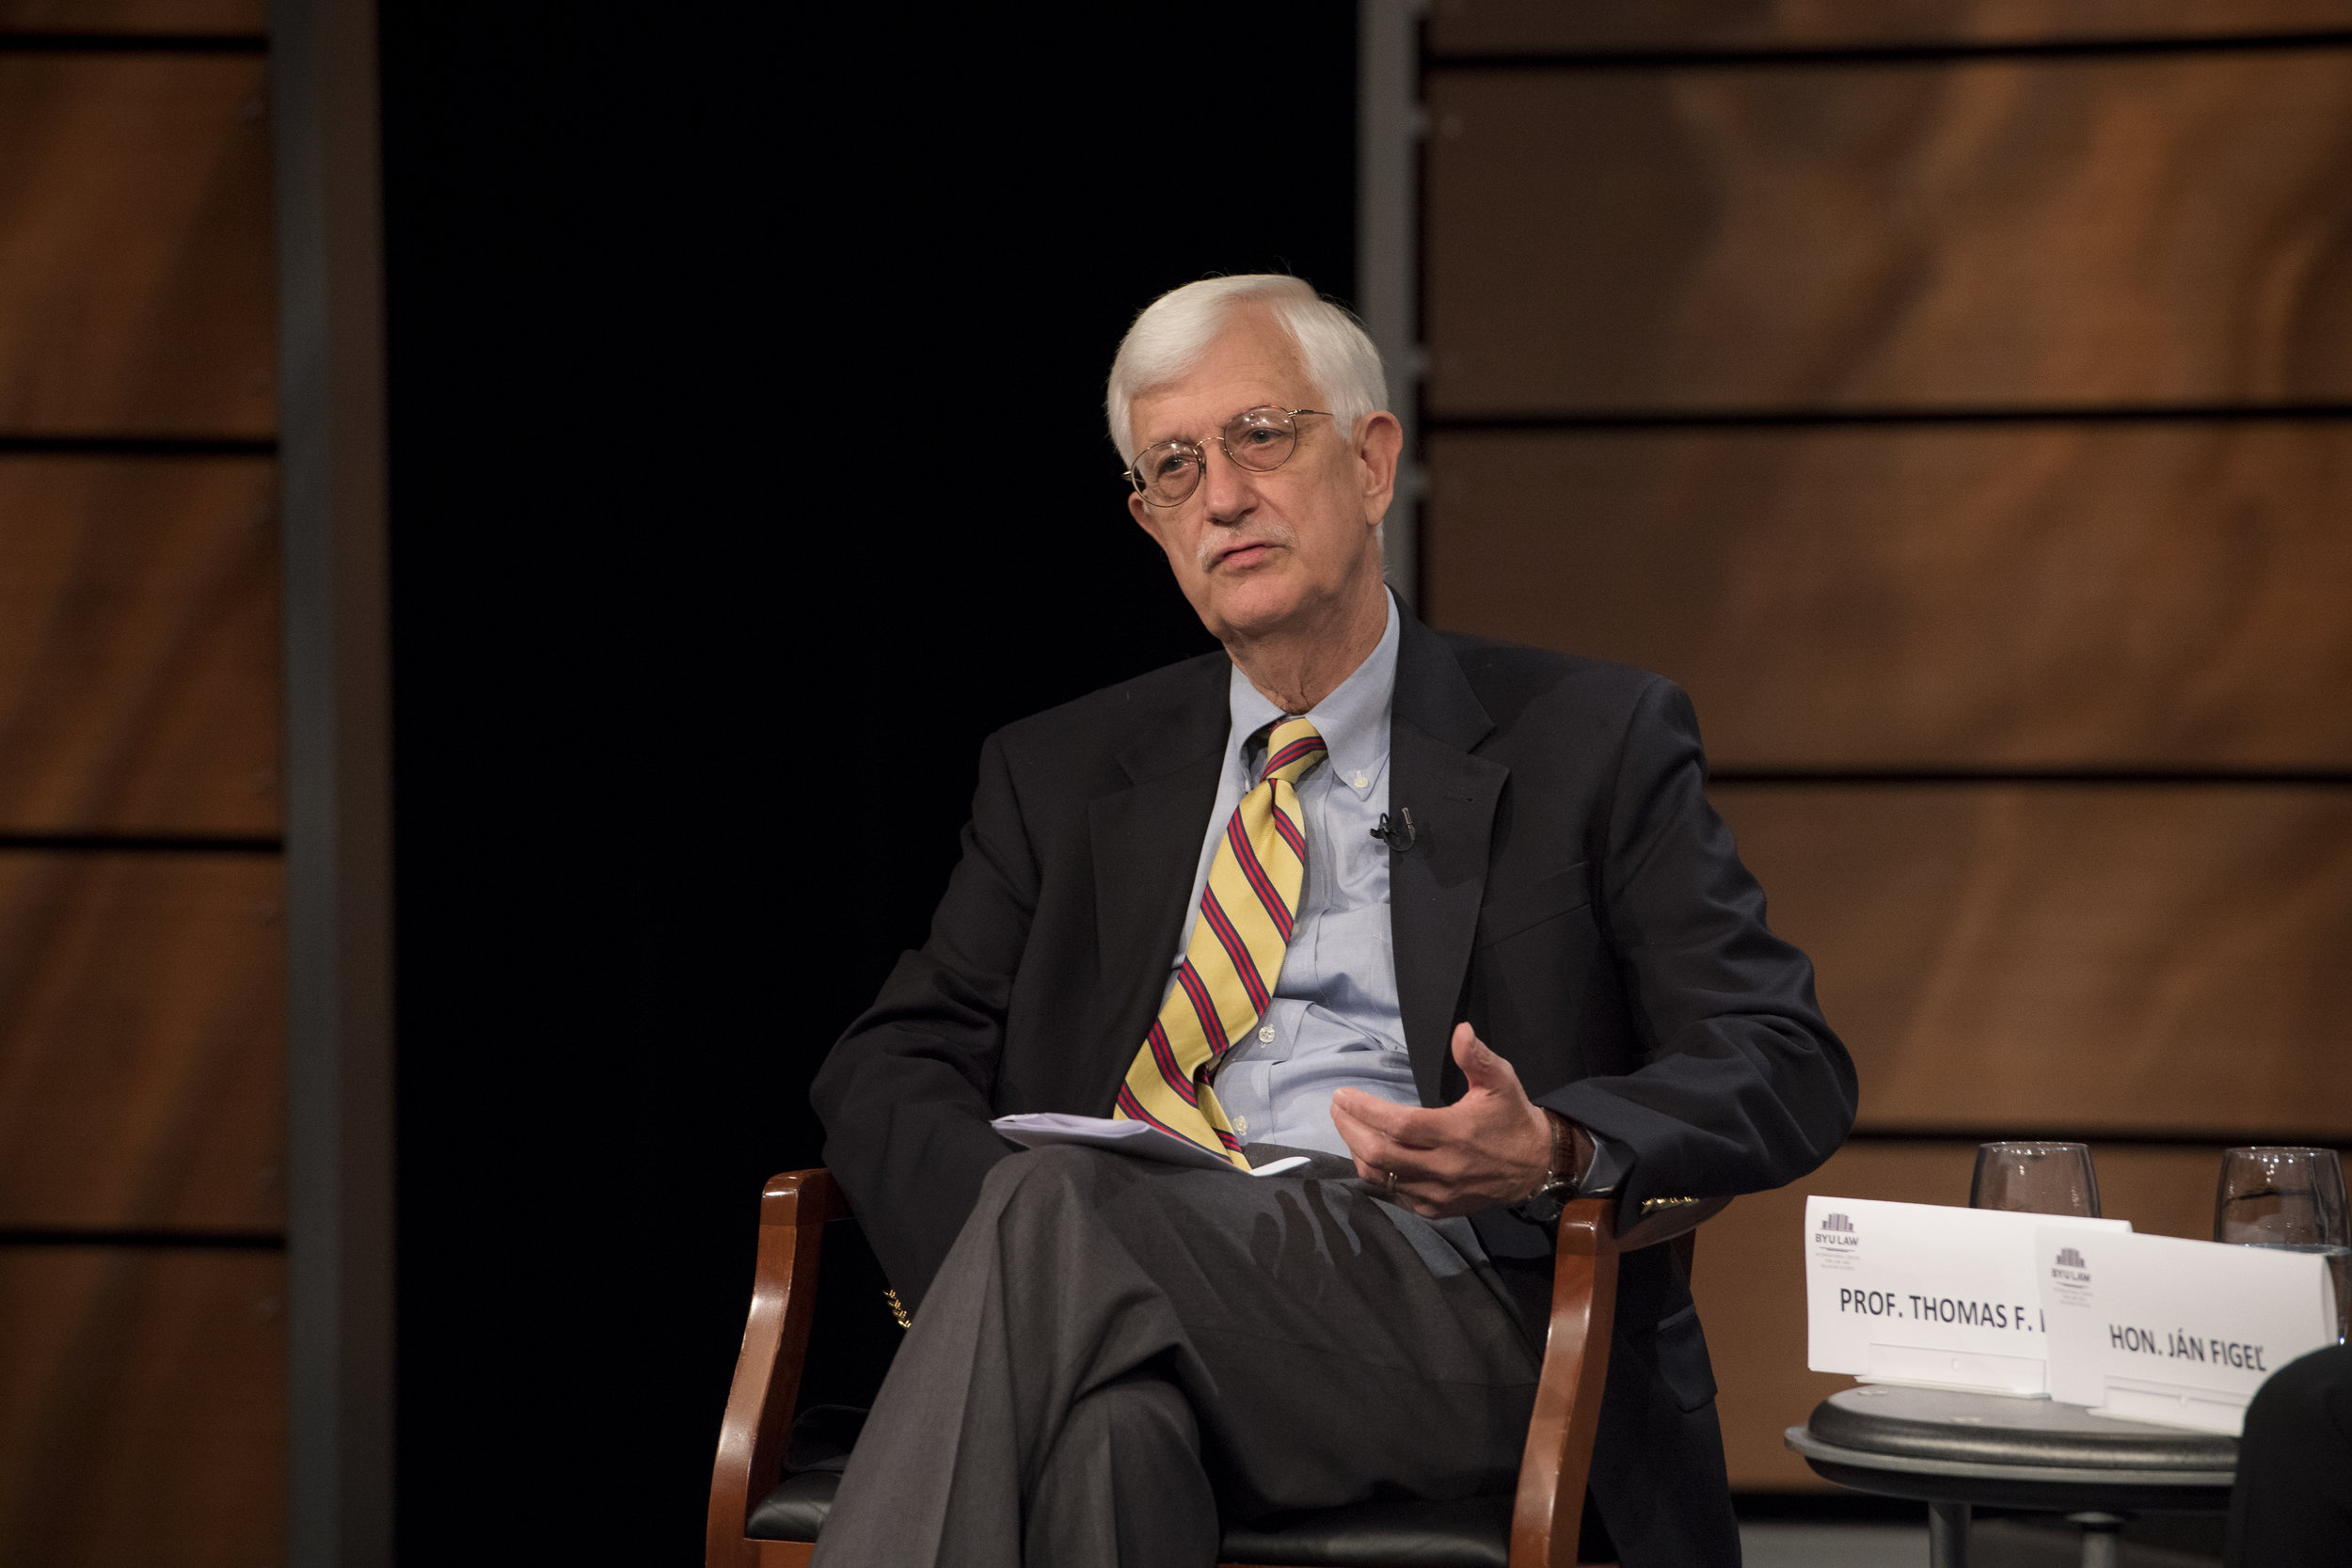 Professor Thomas F. Farr is the president of the Religious Freedom Institute and director of Georgetown University's Religious Freedom Project.